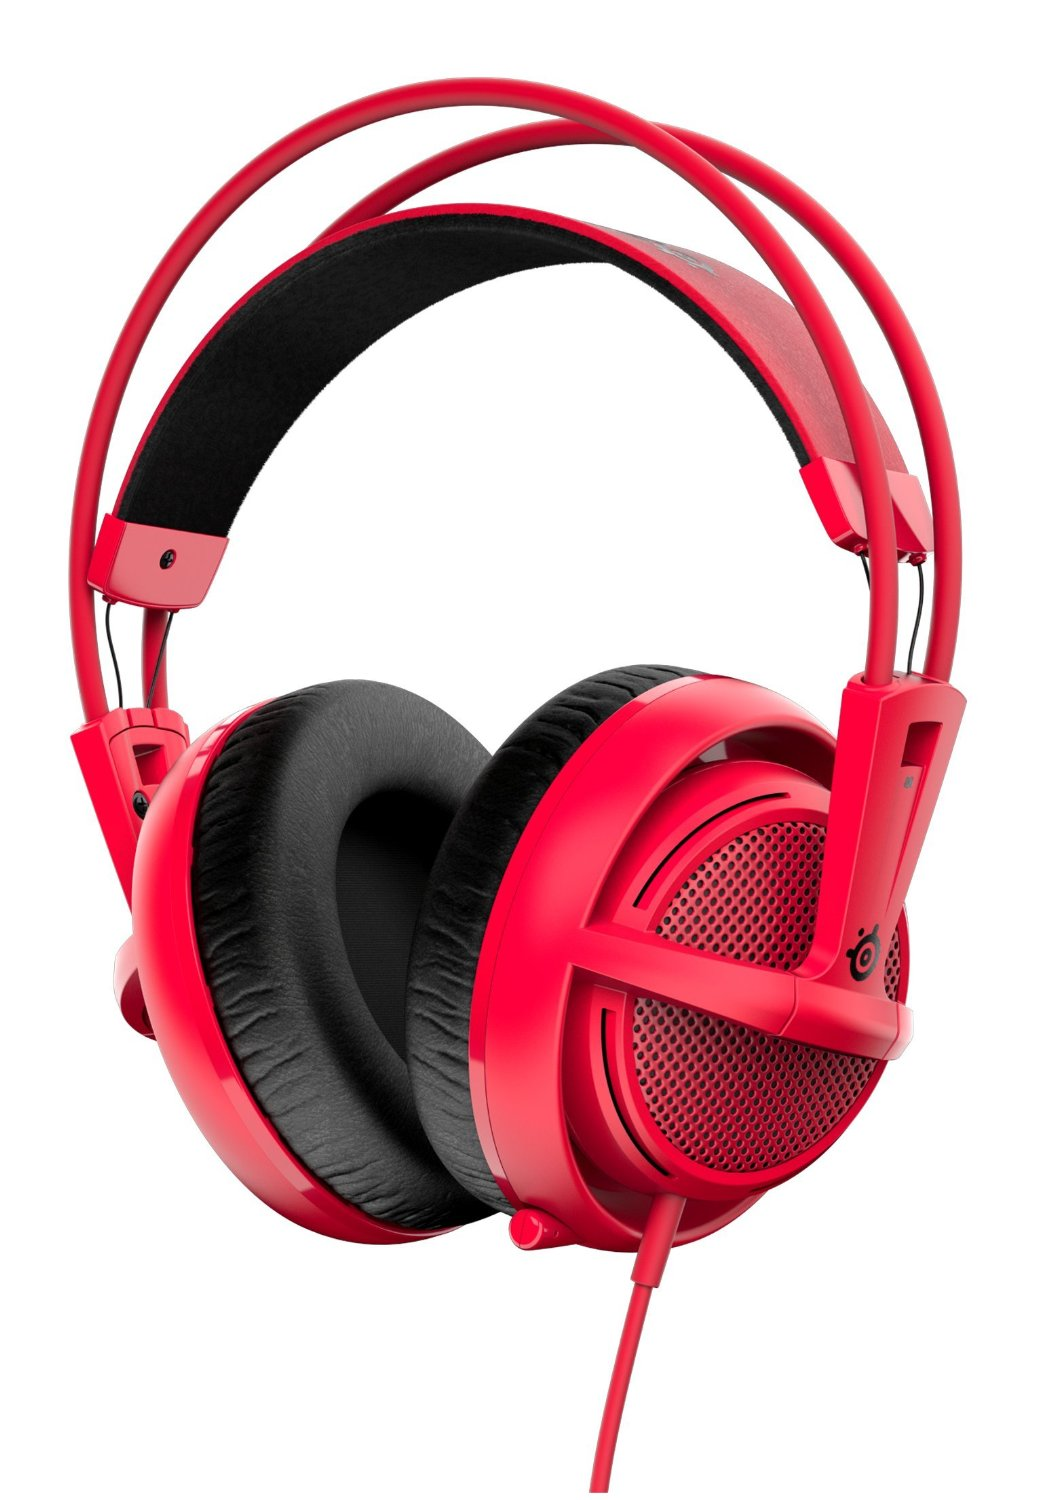 SteelSeries Siberia 200 Gaming Headset - Forged Red